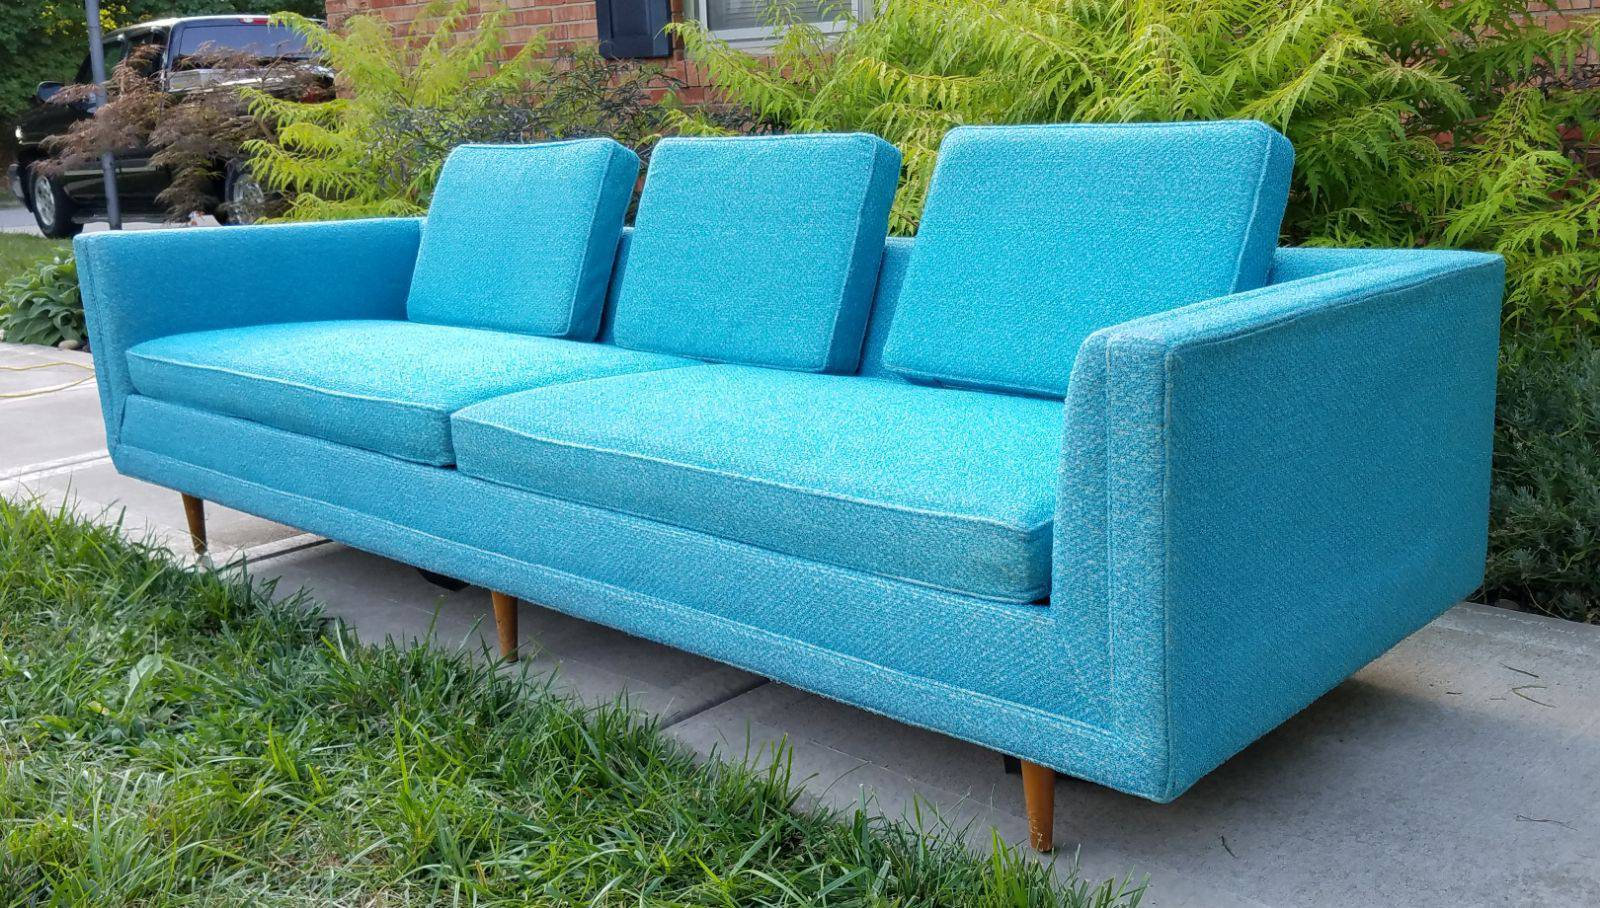 Turquoise Mid Century Sofa in Like New Condition_2